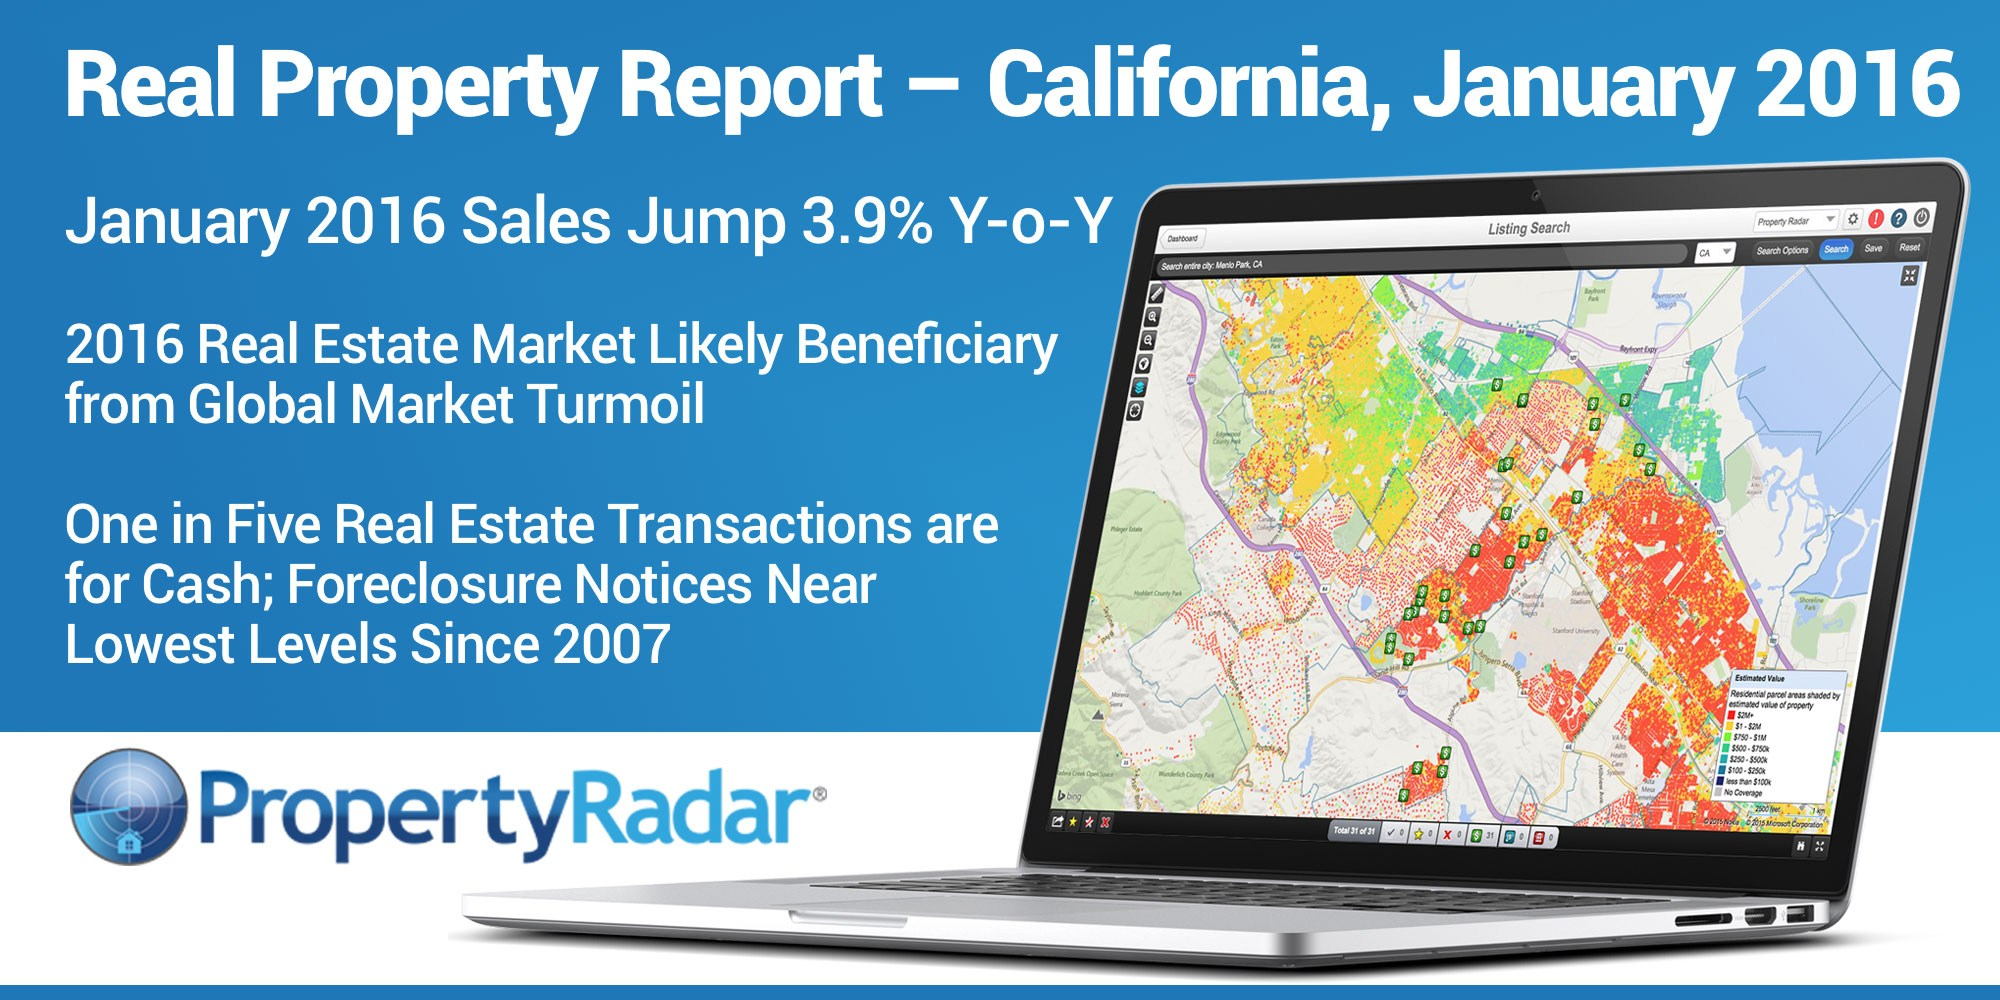 California's real estate market continues to be resilient. The extreme volatility in the equity markets has precipitated considerable outflows of cash, some of which may be finding its way into California real estate. Despite a slowdown in